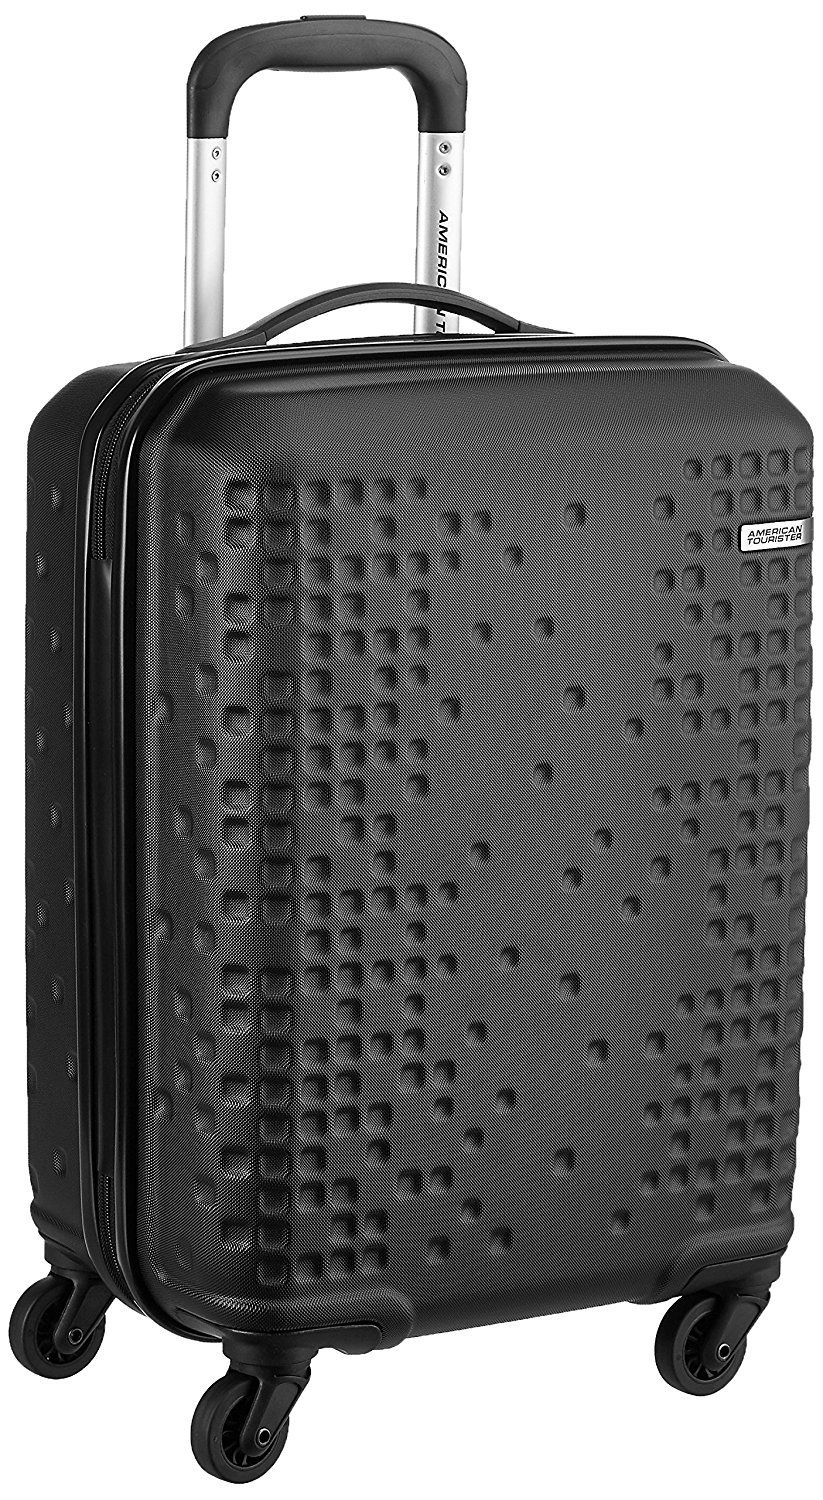 564ede35d 65% Off: American Tourister Cruze ABS 55 cms Black Hardsided Carry .